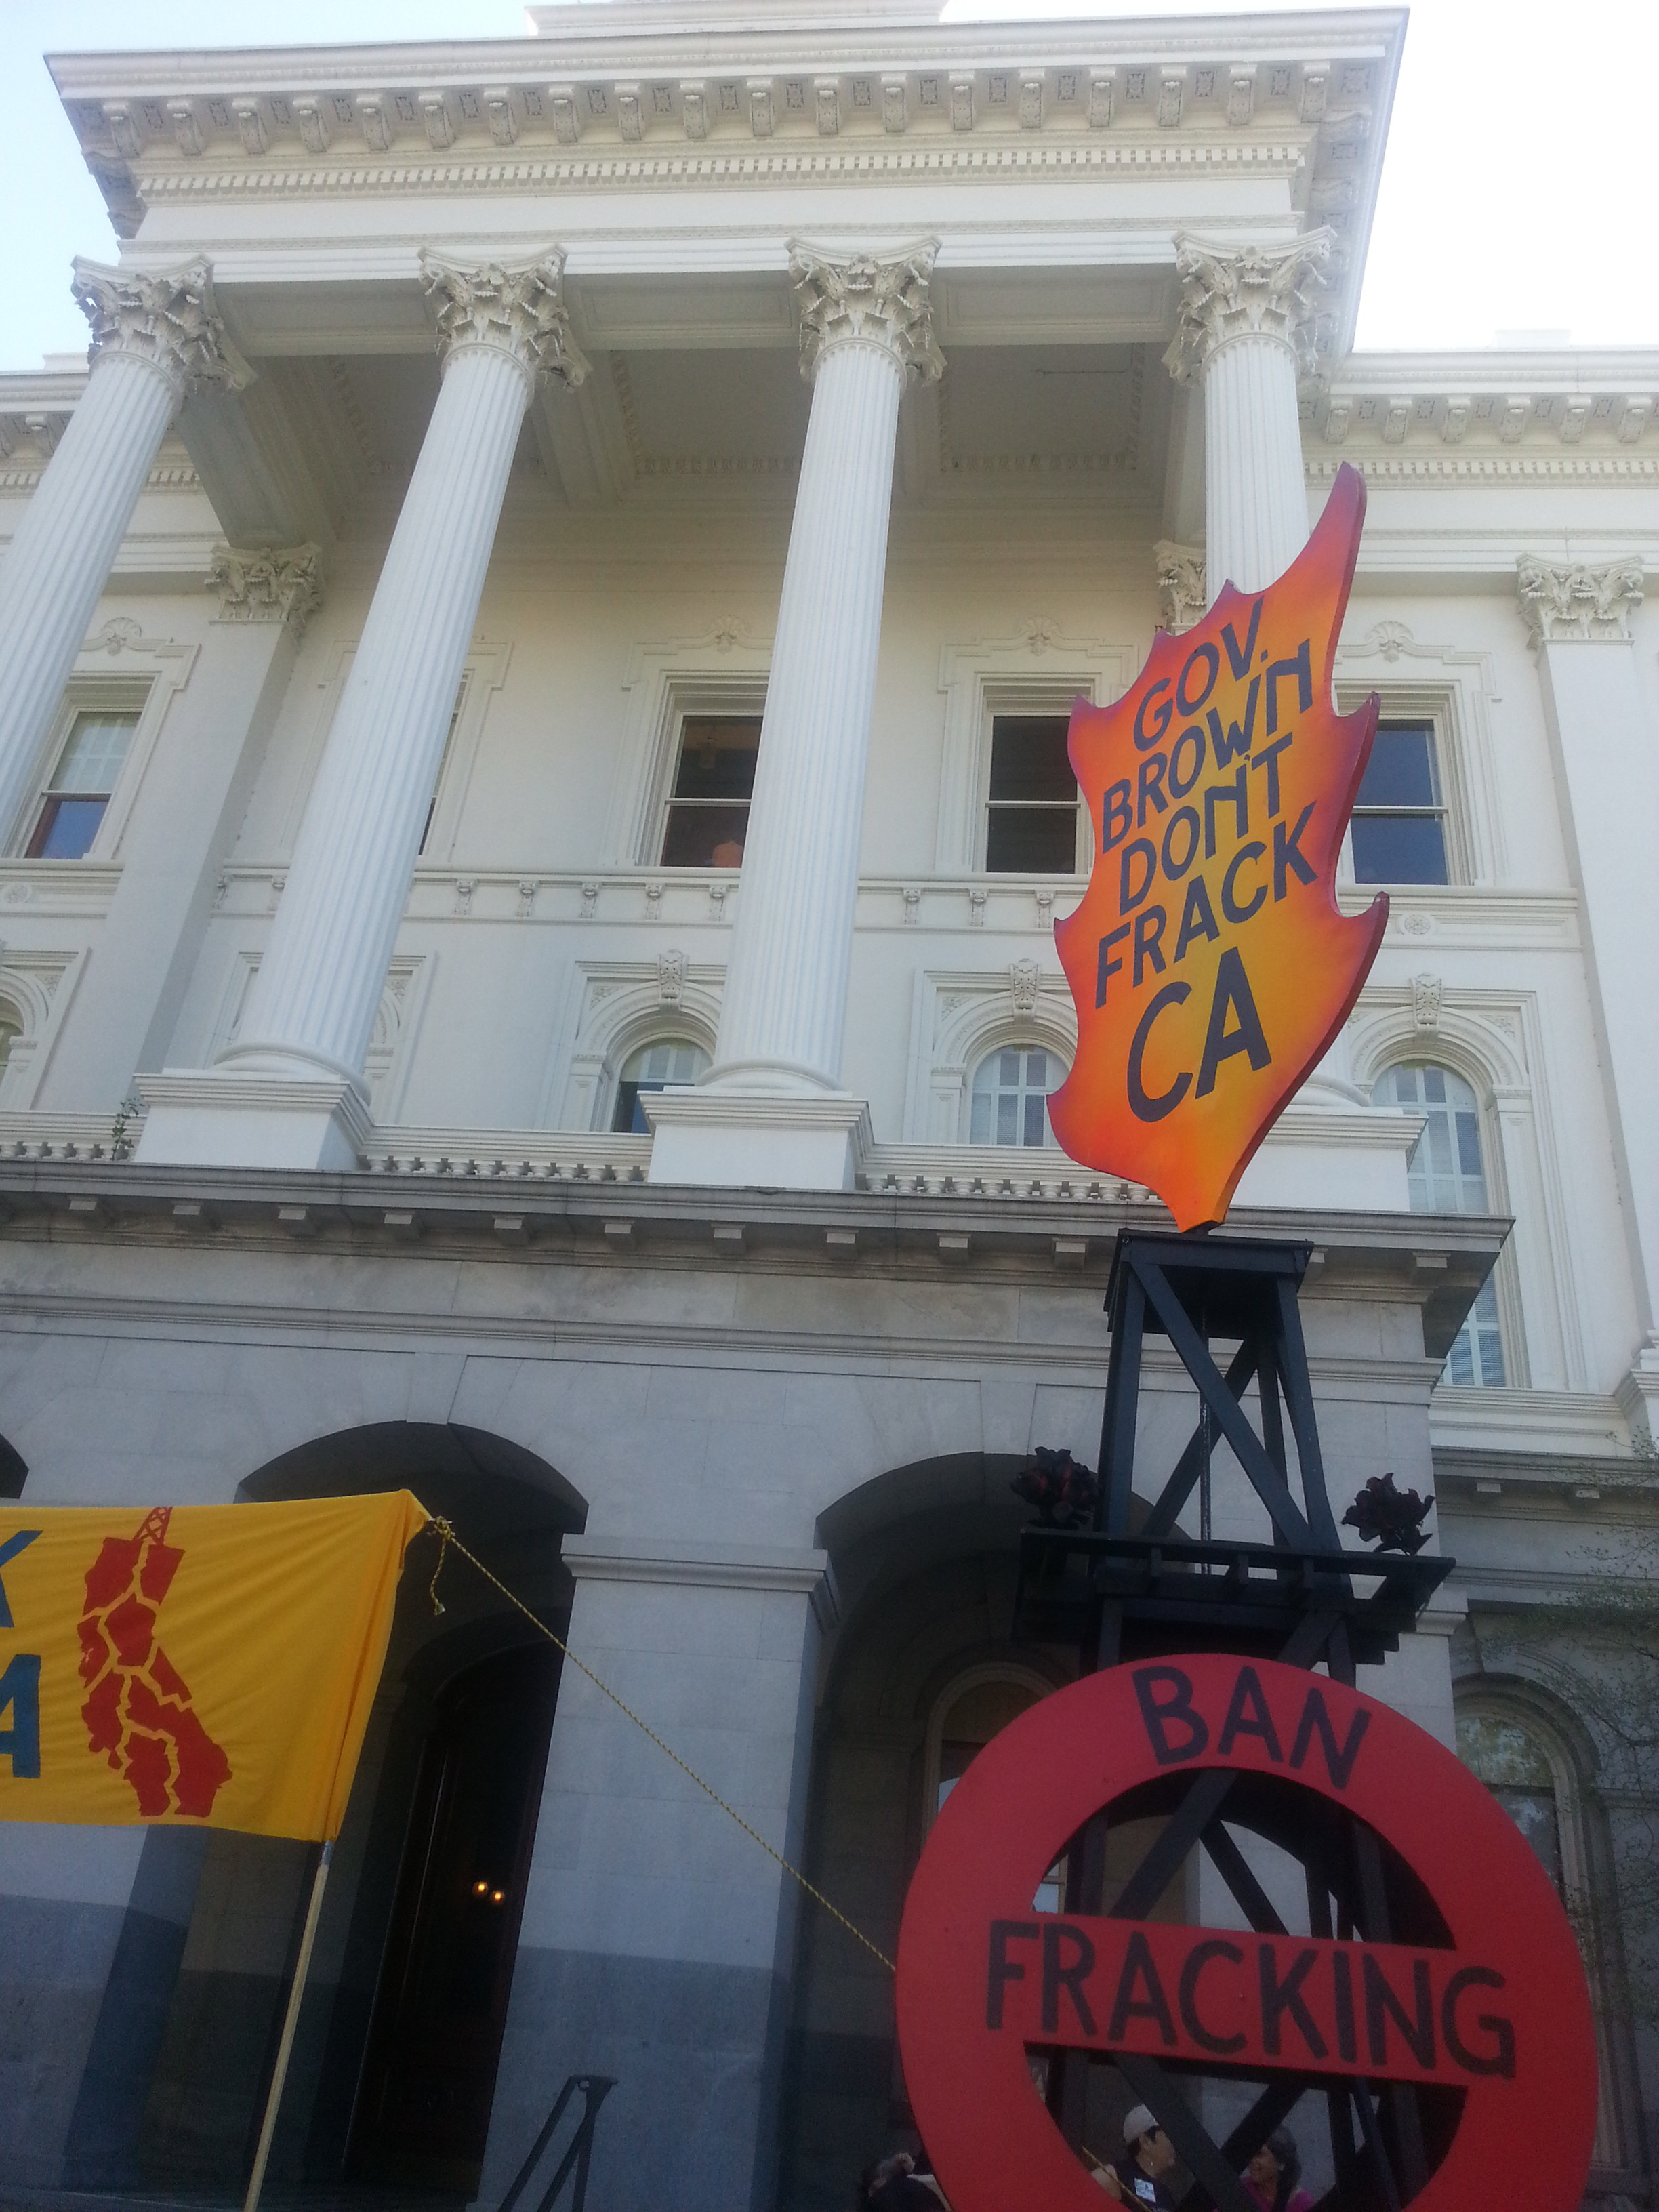 Message 'Ban Fracking' on the front lawn of the Capitol in Sacramento, March 15th.